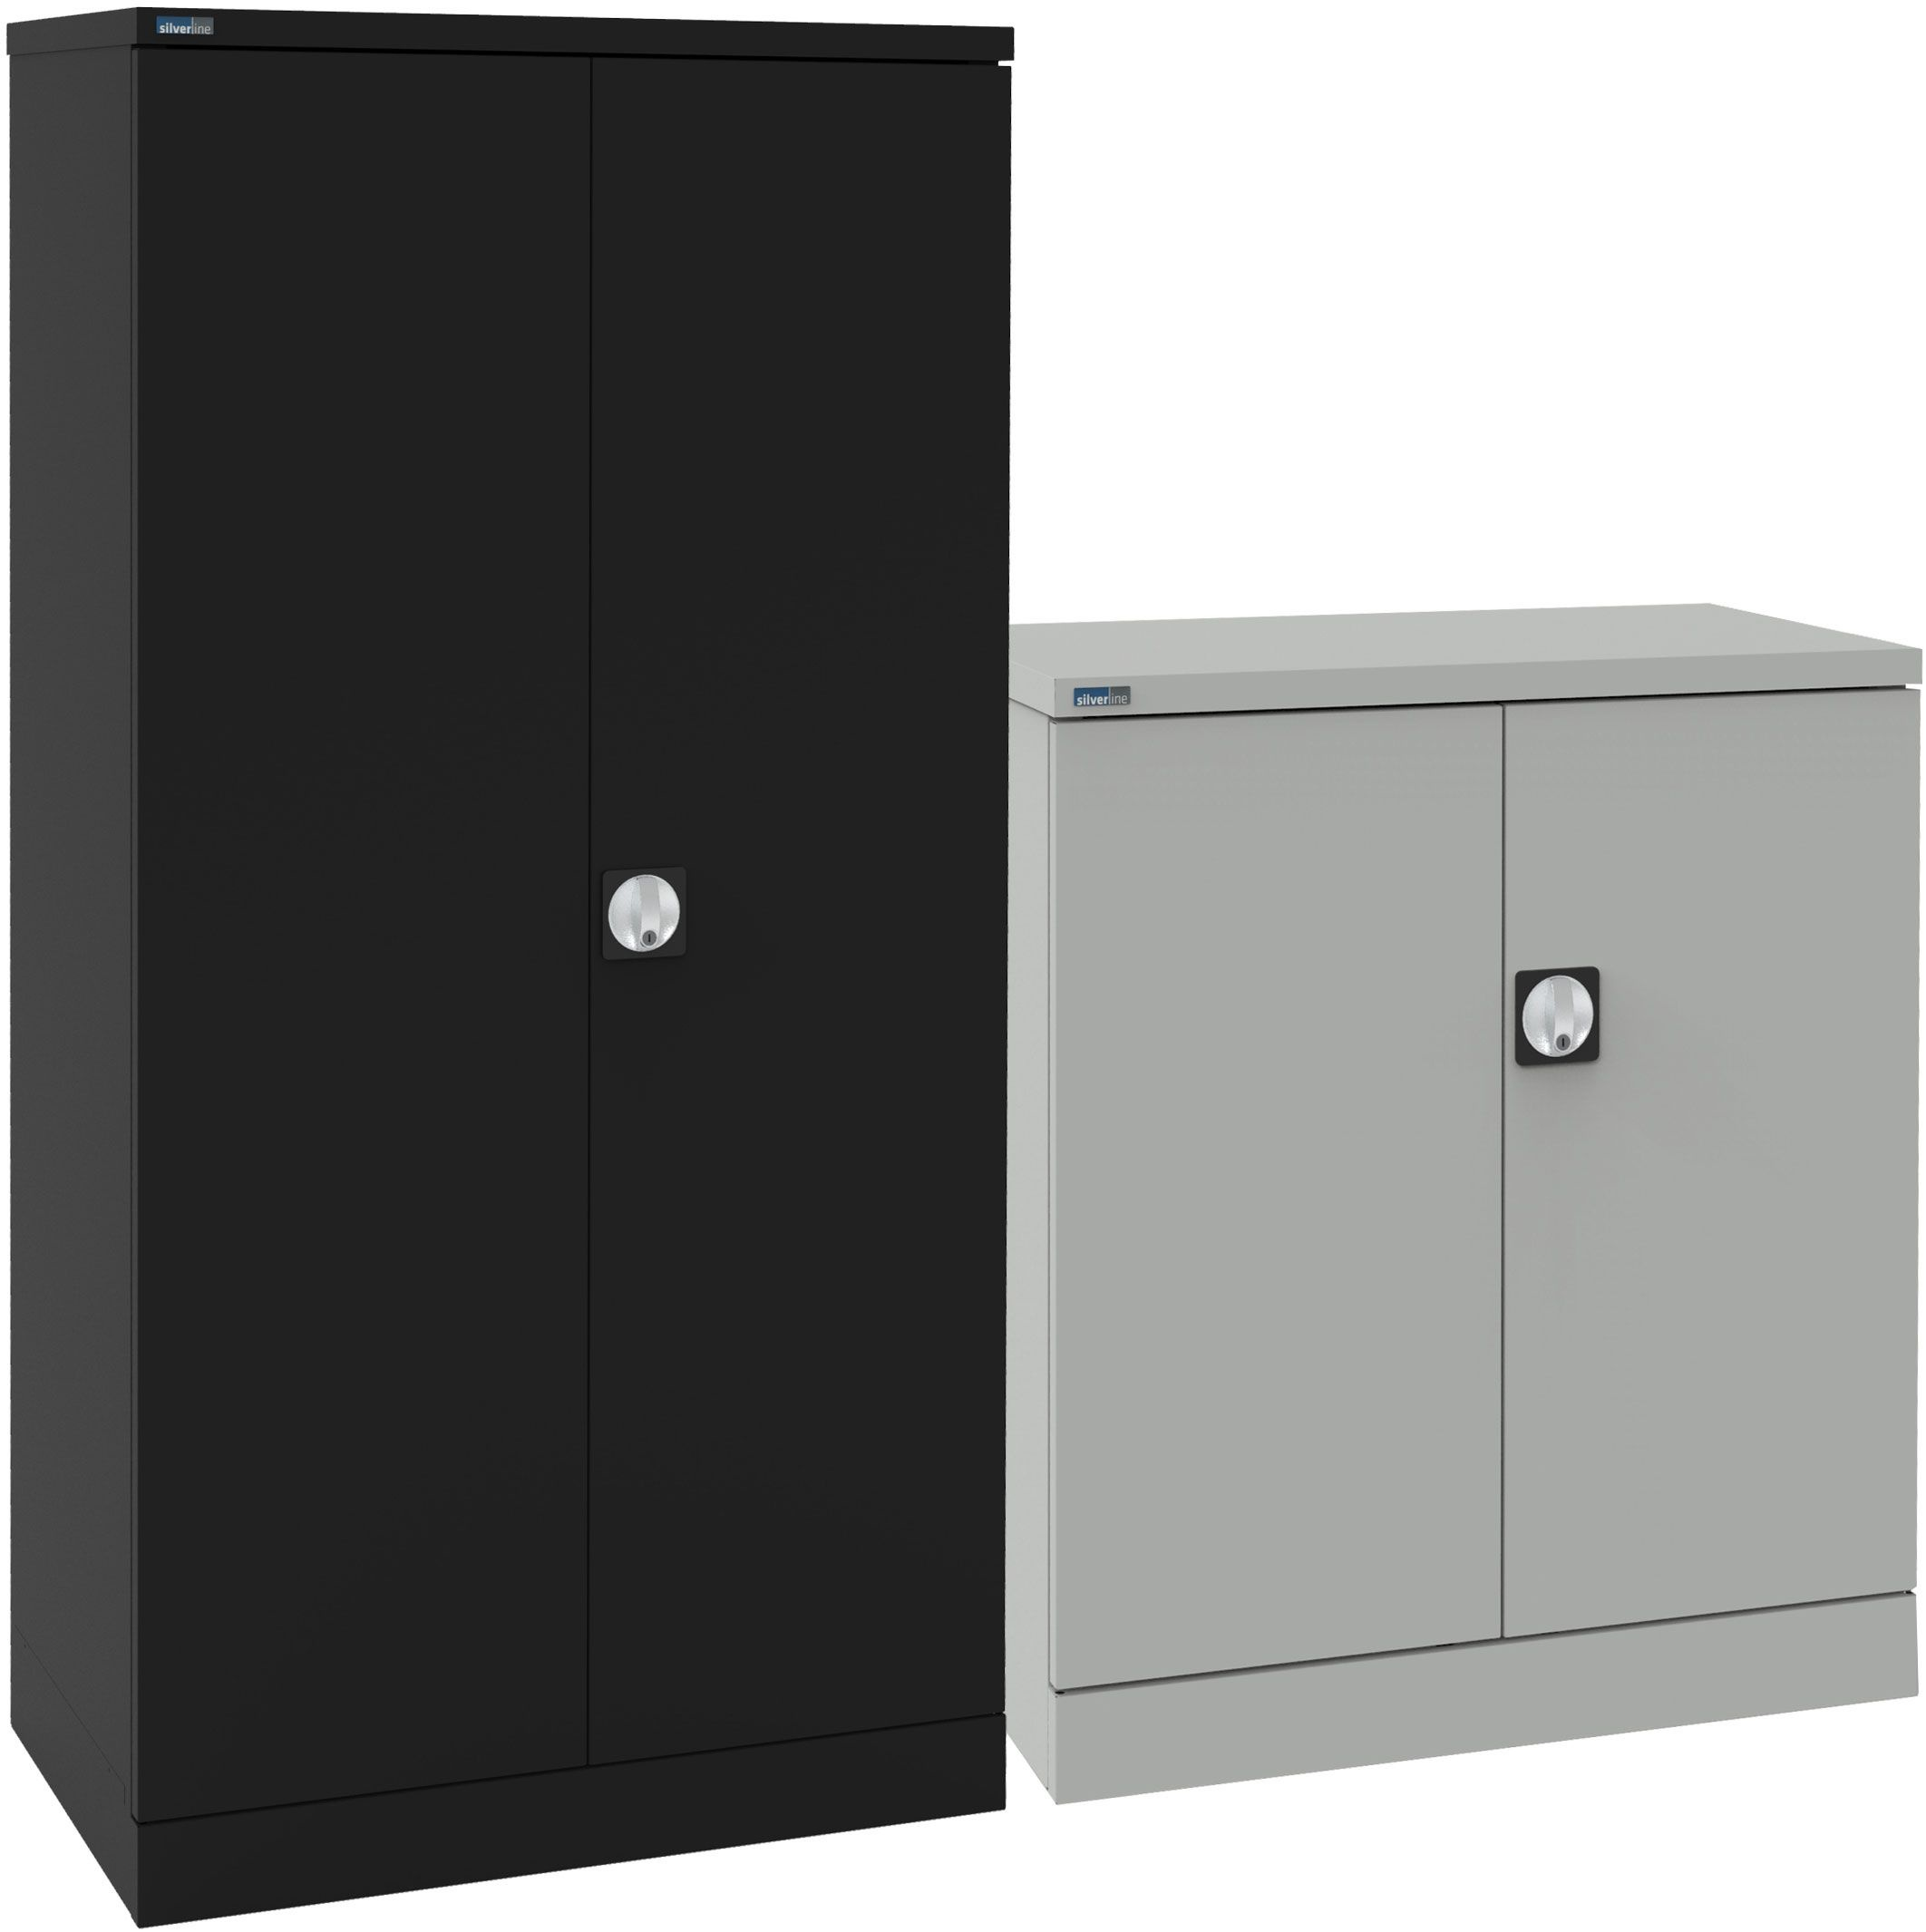 SILVERLINE TAMBOUR CABINET CUPBOARD WITH ADJUSTABLE SHELVES,